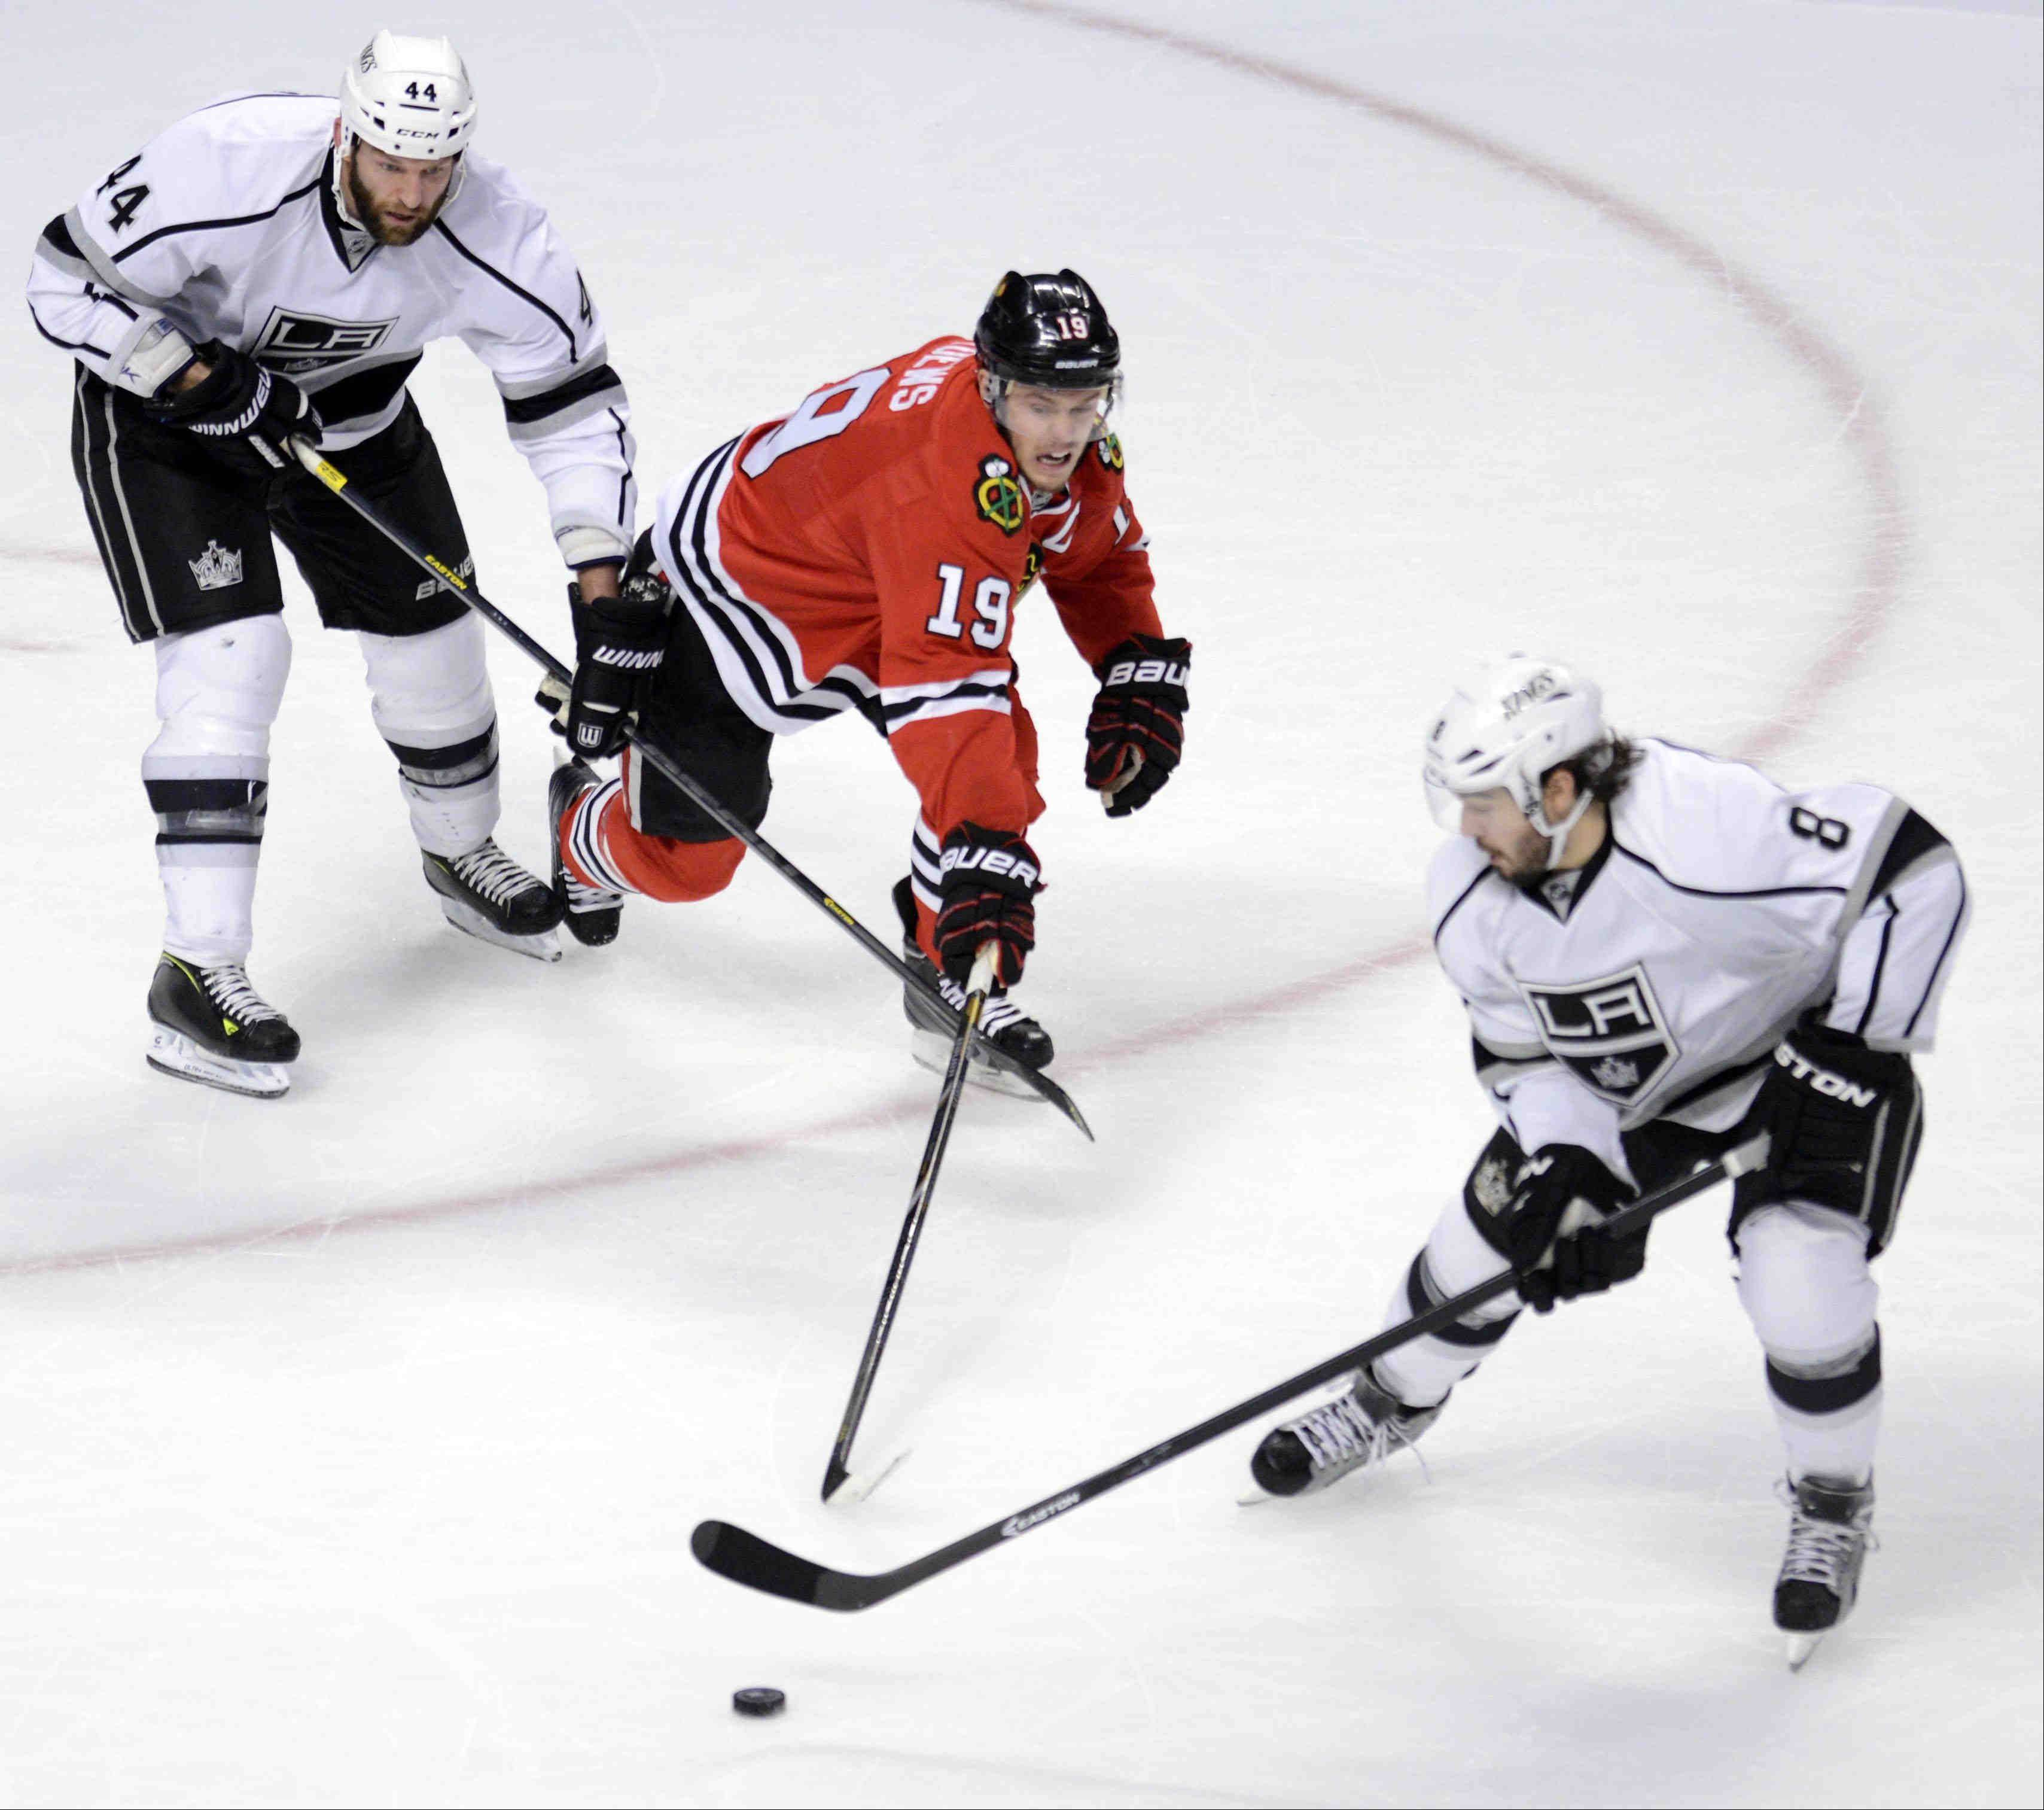 Chicago Blackhawks center Jonathan Toews is double teamed by Los Angeles Kings defenseman Robyn Regehr and Drew Doughty Saturday during the NHL Western Conference Finals Game 5 at the United Center in Chicago.